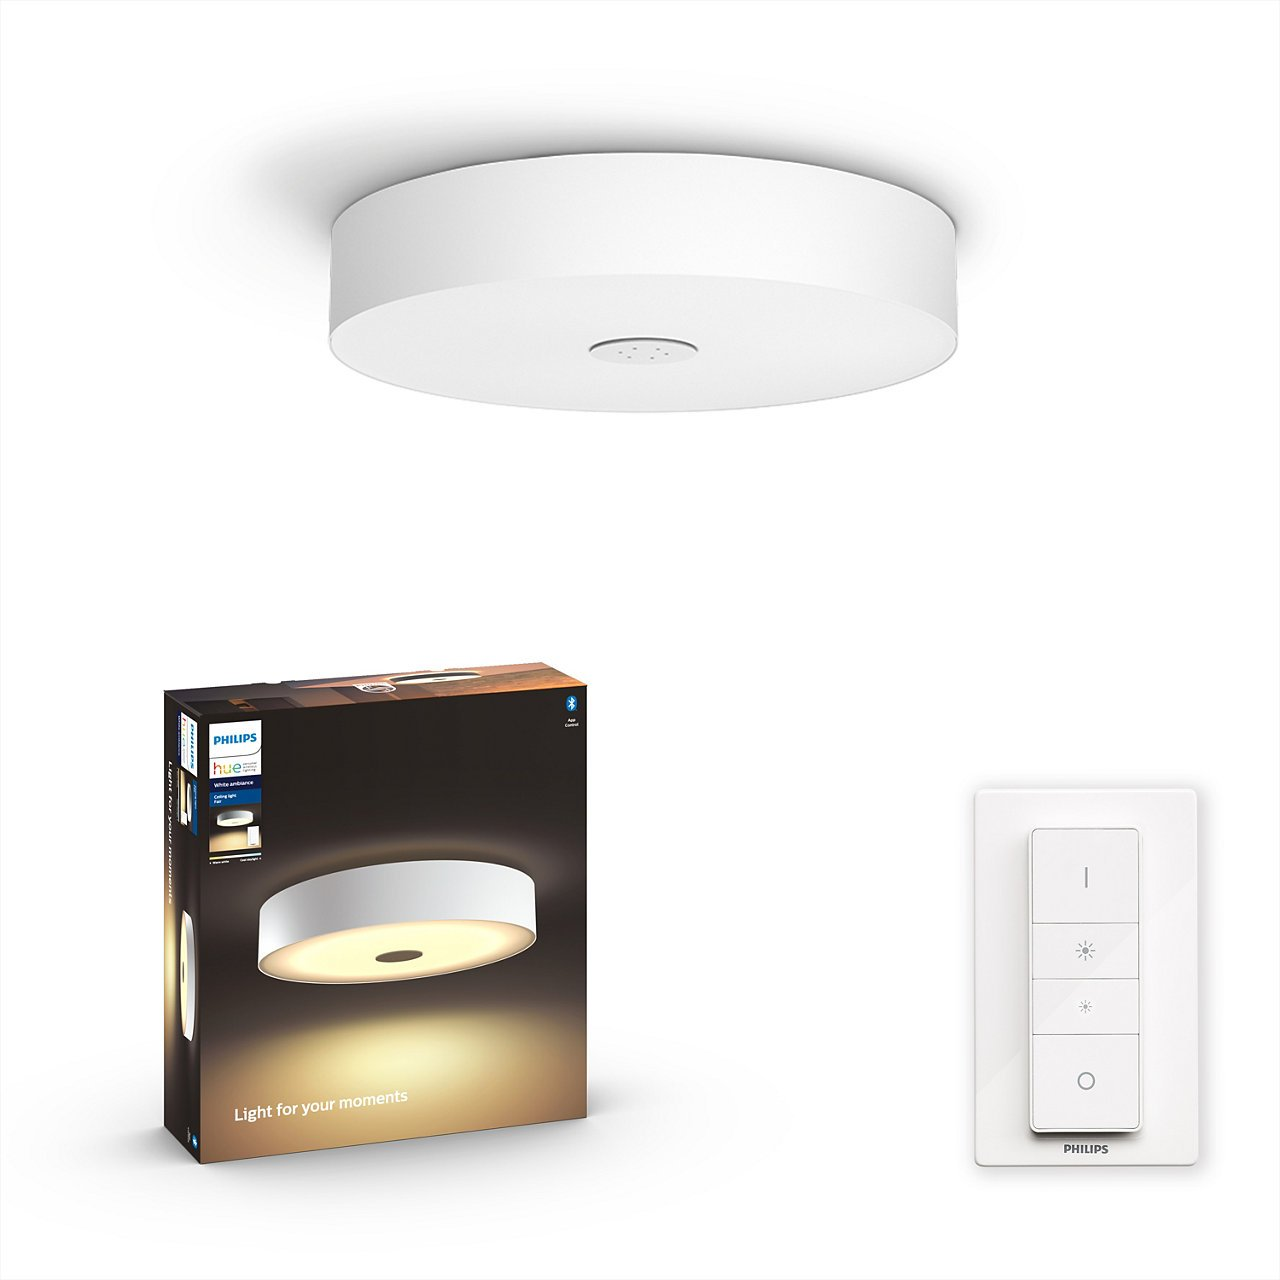 Philips Hue - Fair Hue Ceiling Lamp White - White Ambiance - Bluetooth Included Dimmer